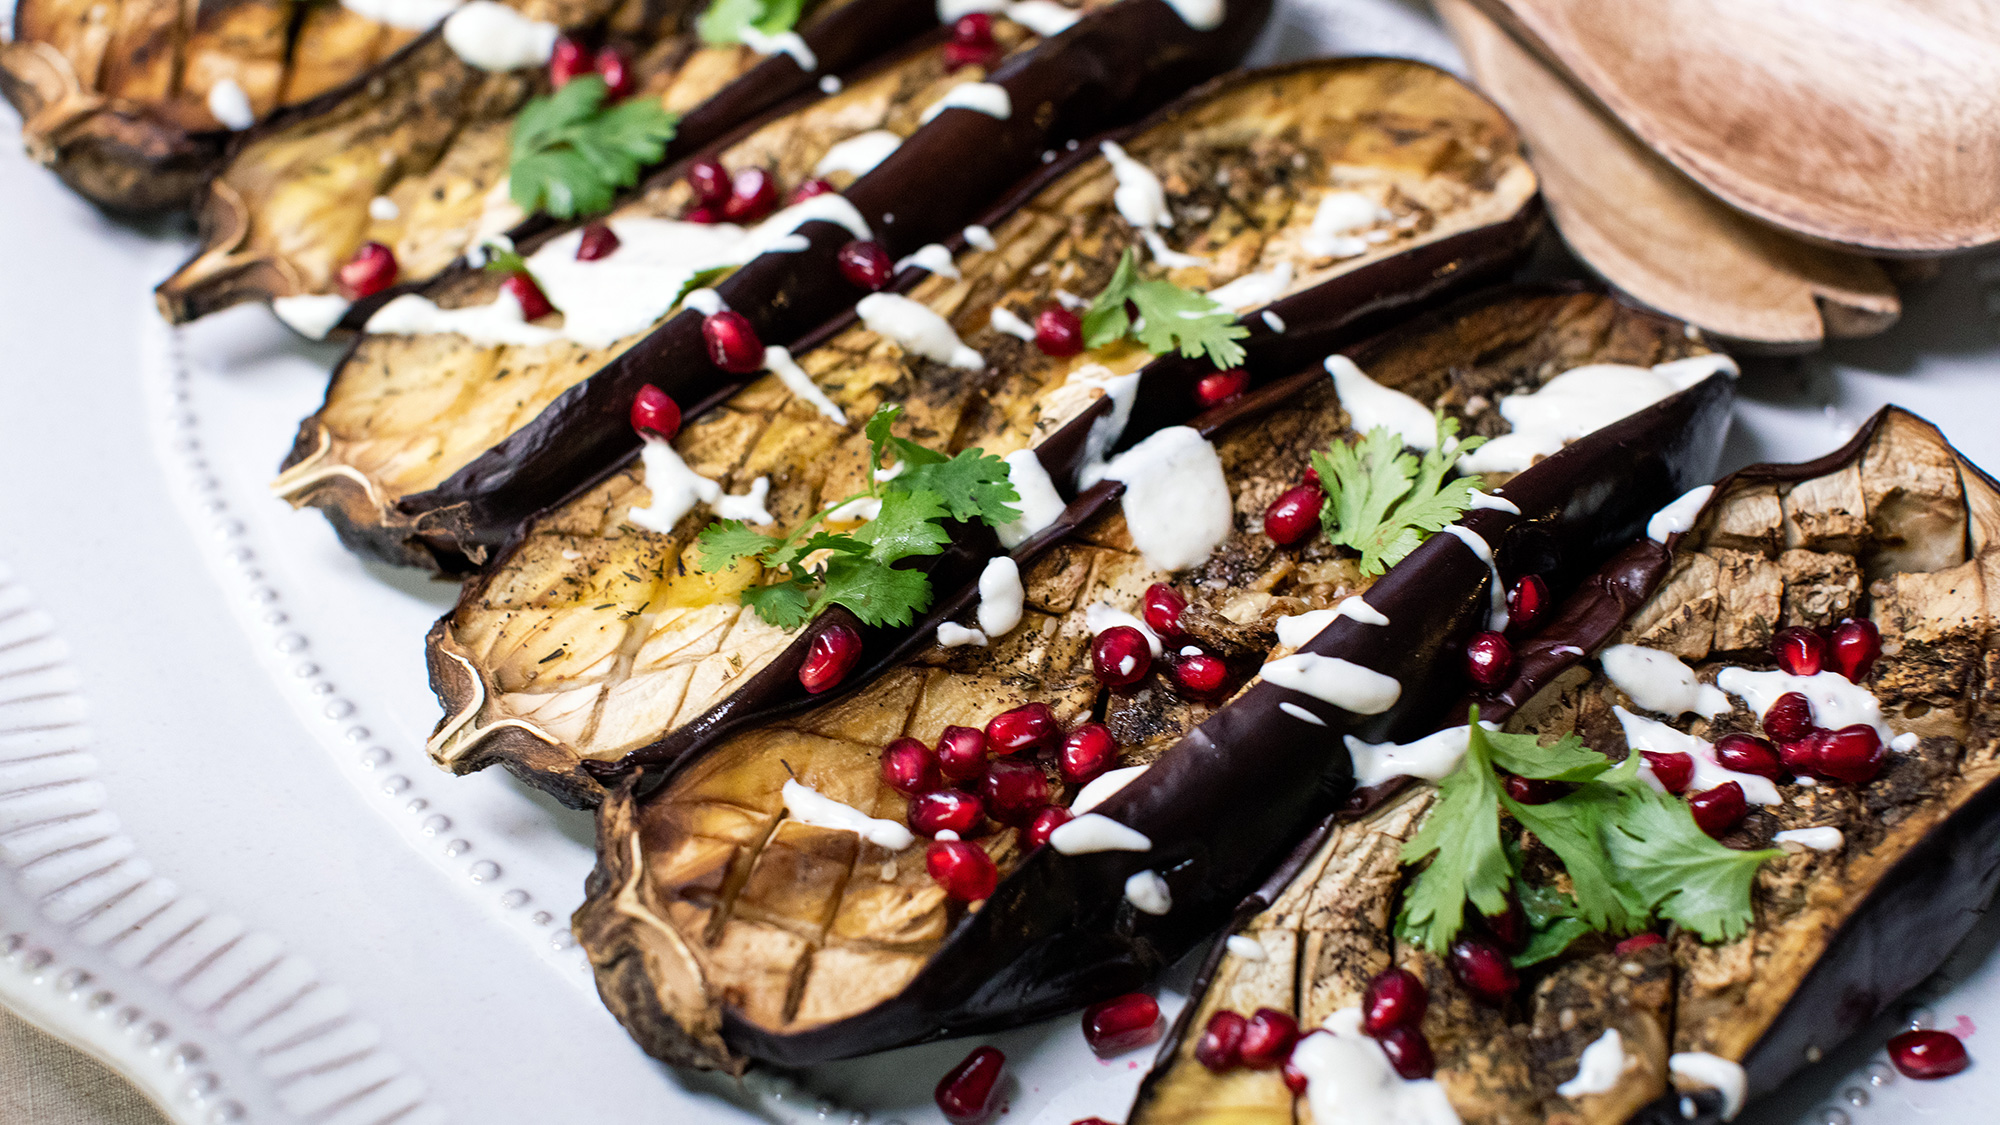 Roasted-Eggplant-with-Yogurt-Sauce-2000x1125.jpg